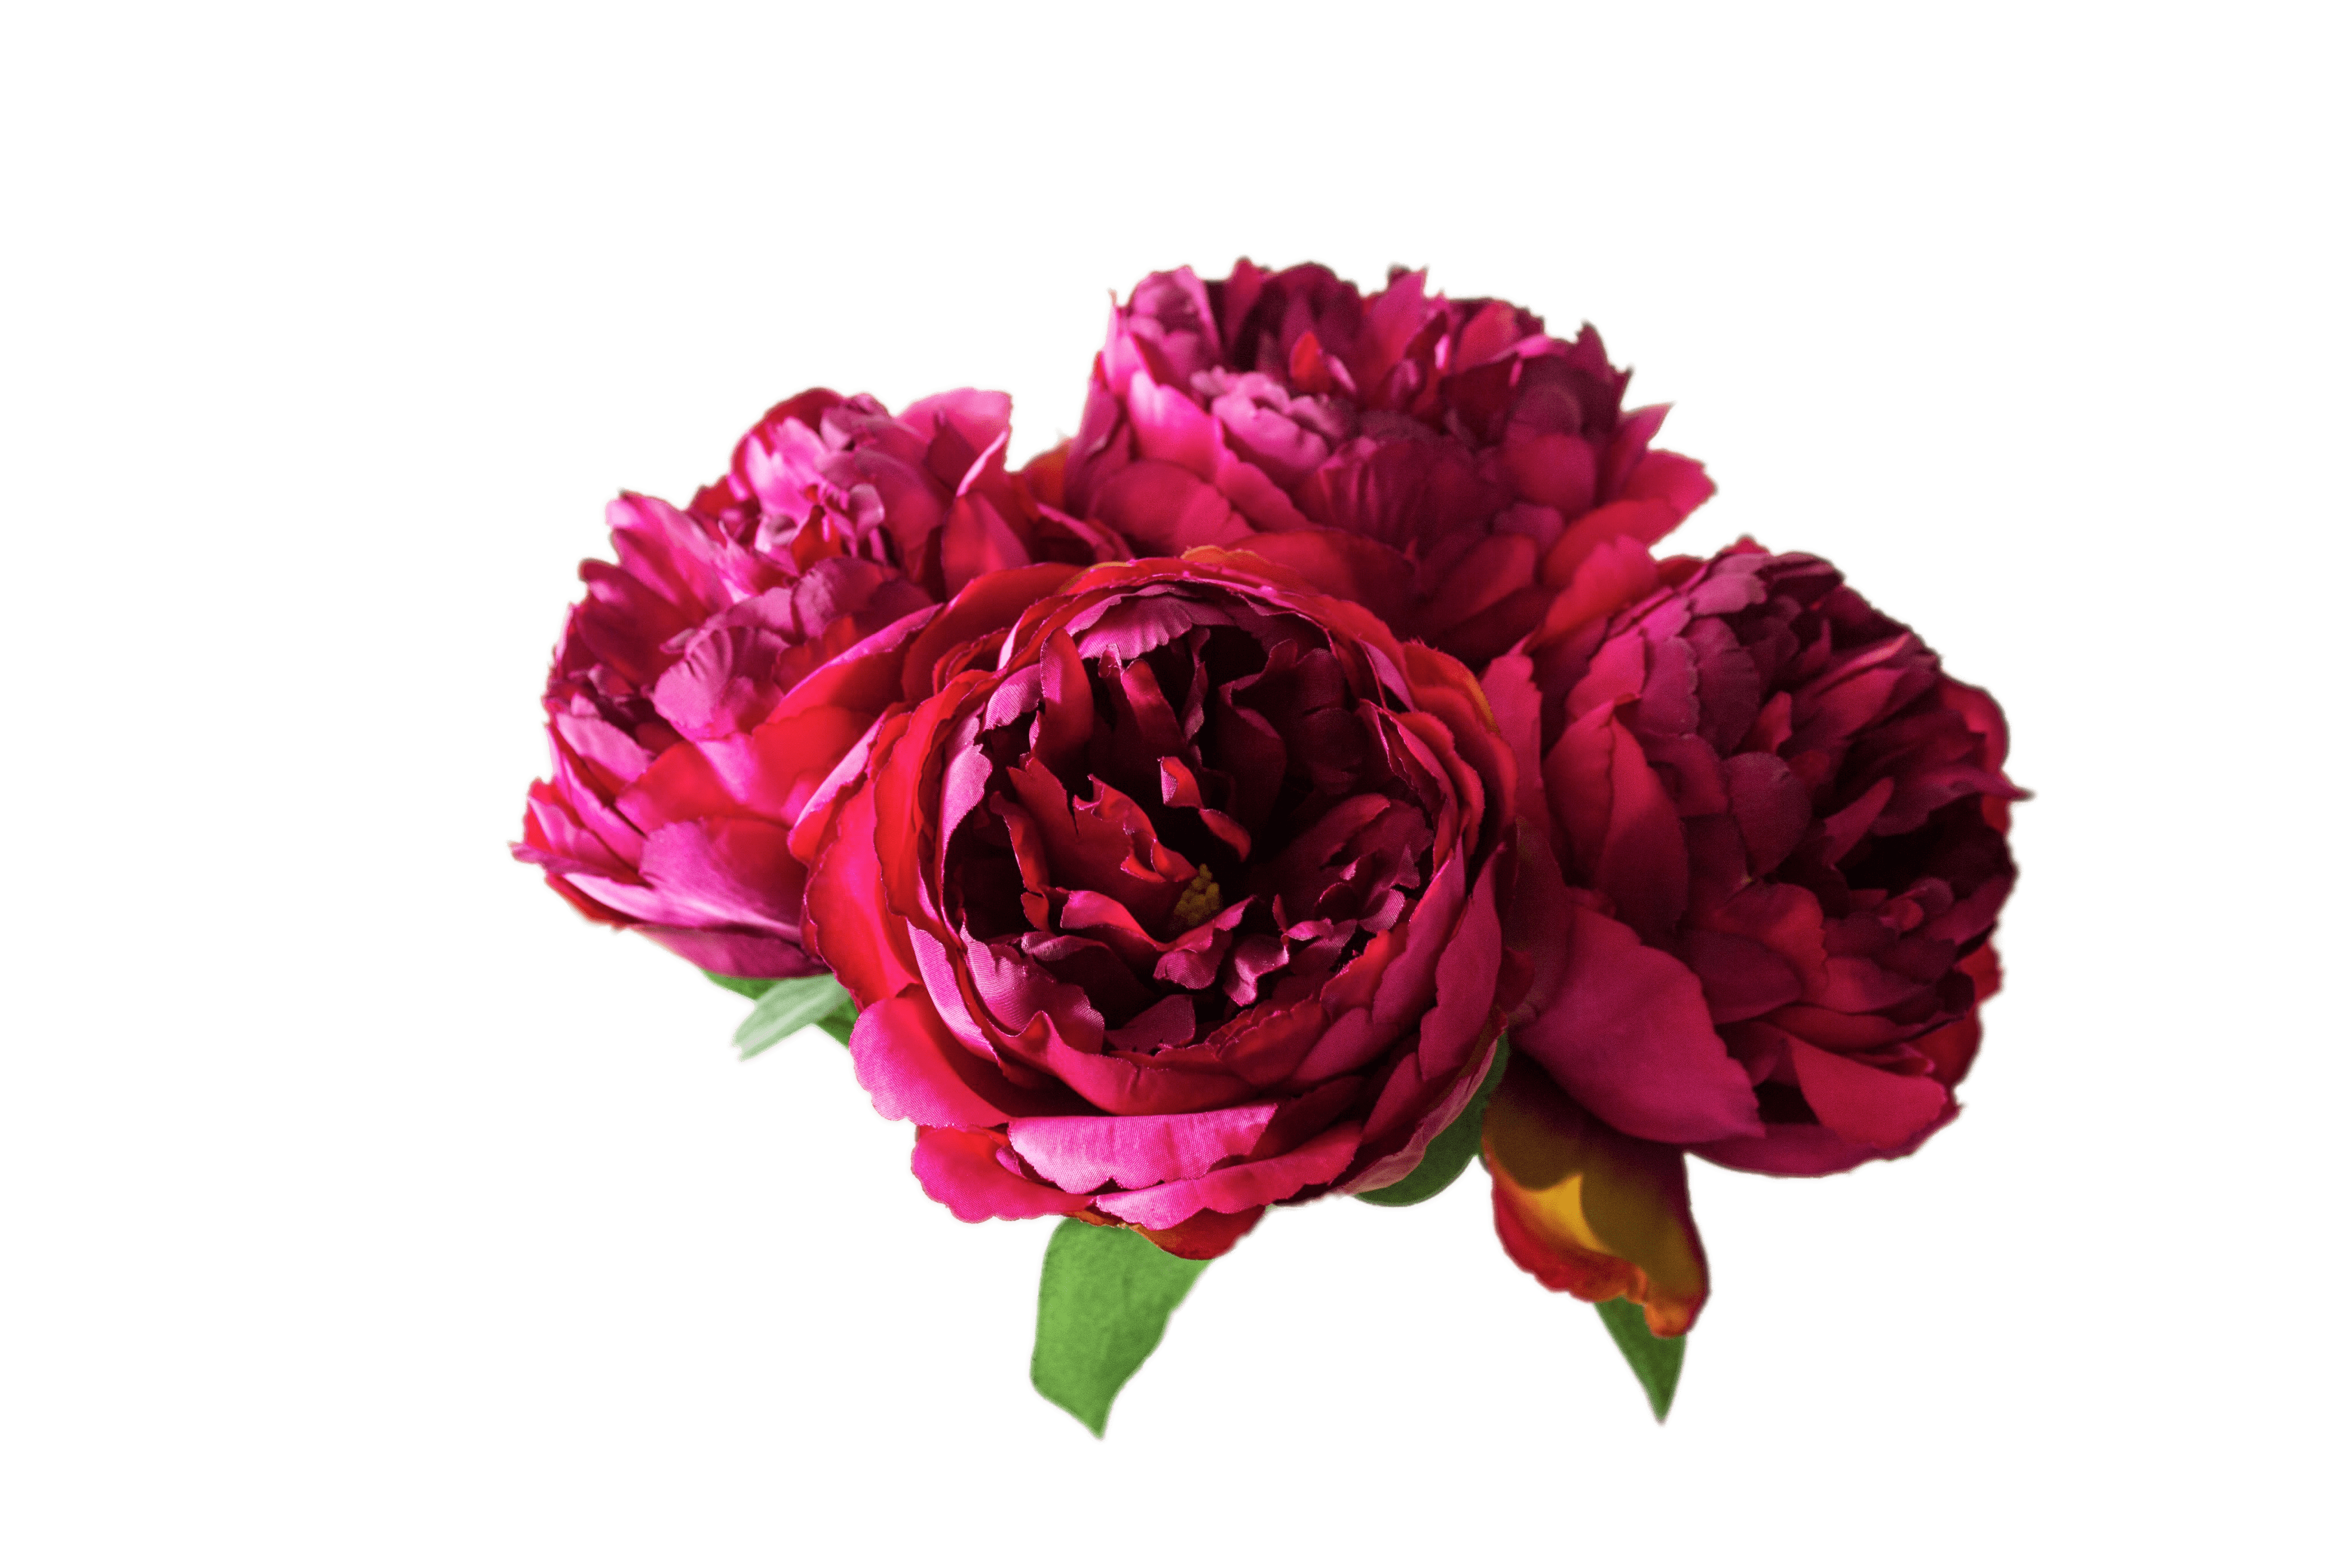 Peony flower clipart freeuse download Peonies transparent PNG - StickPNG freeuse download